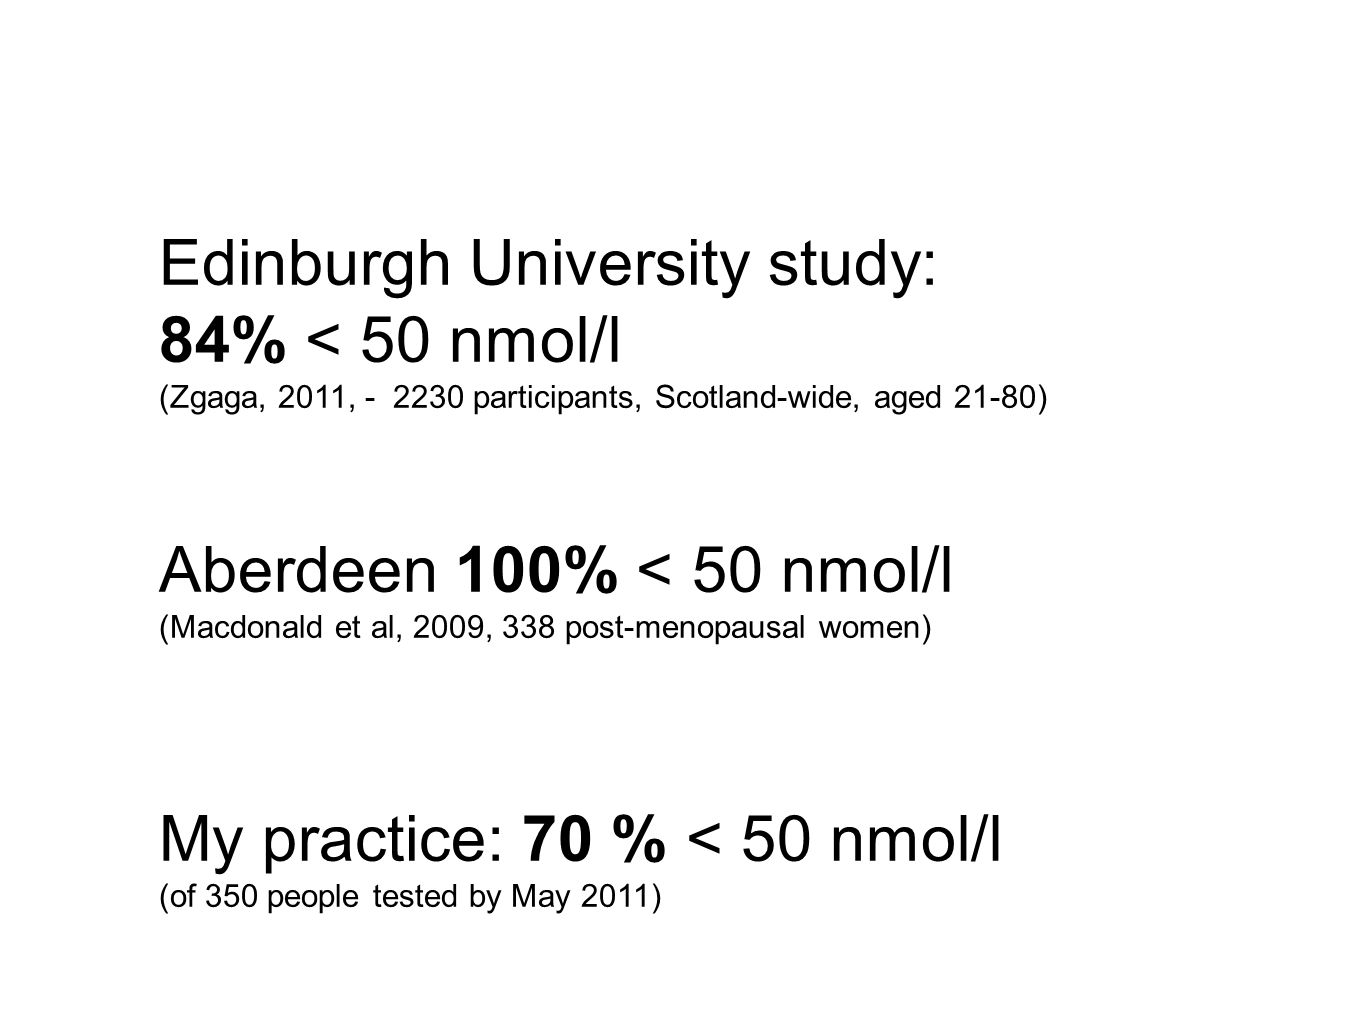 Edinburgh University study: 84% < 50 nmol/l (Zgaga, 2011, participants, Scotland-wide, aged 21-80) Aberdeen 100% < 50 nmol/l (Macdonald et al, 2009, 338 post-menopausal women) My practice: 70 % < 50 nmol/l (of 350 people tested by May 2011)